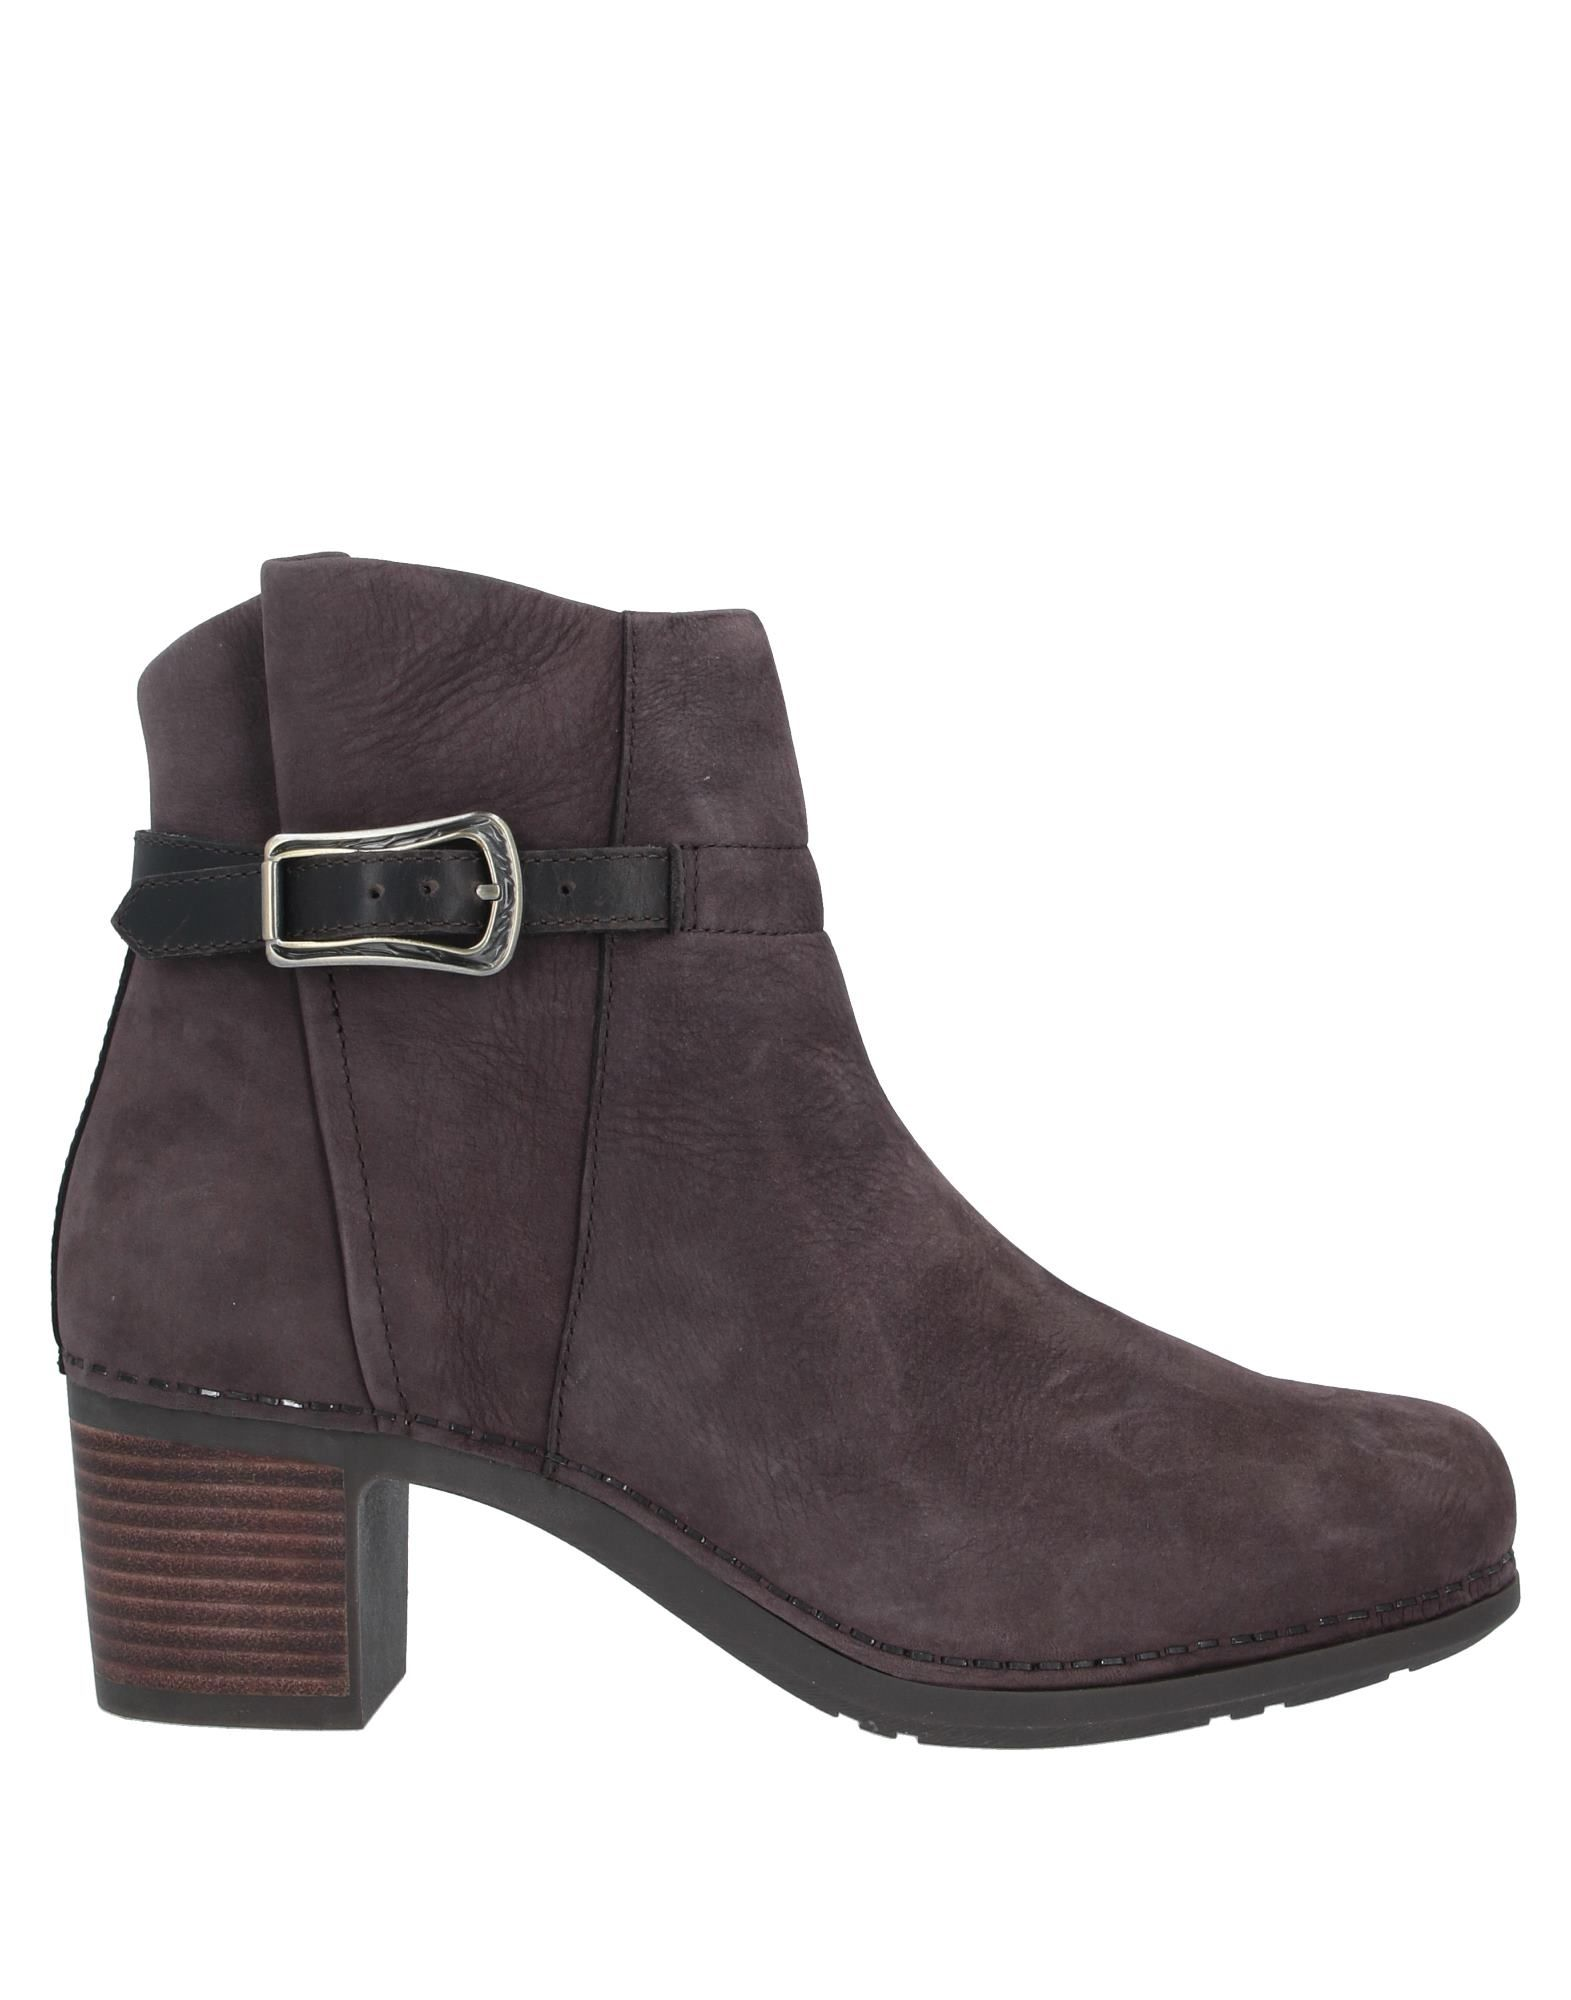 DANSKO Ankle boots. leather, nubuck, buckle, solid color, zipper closure, round toeline, square heel, fabric inner, rubber sole, contains non-textile parts of animal origin. Soft Leather